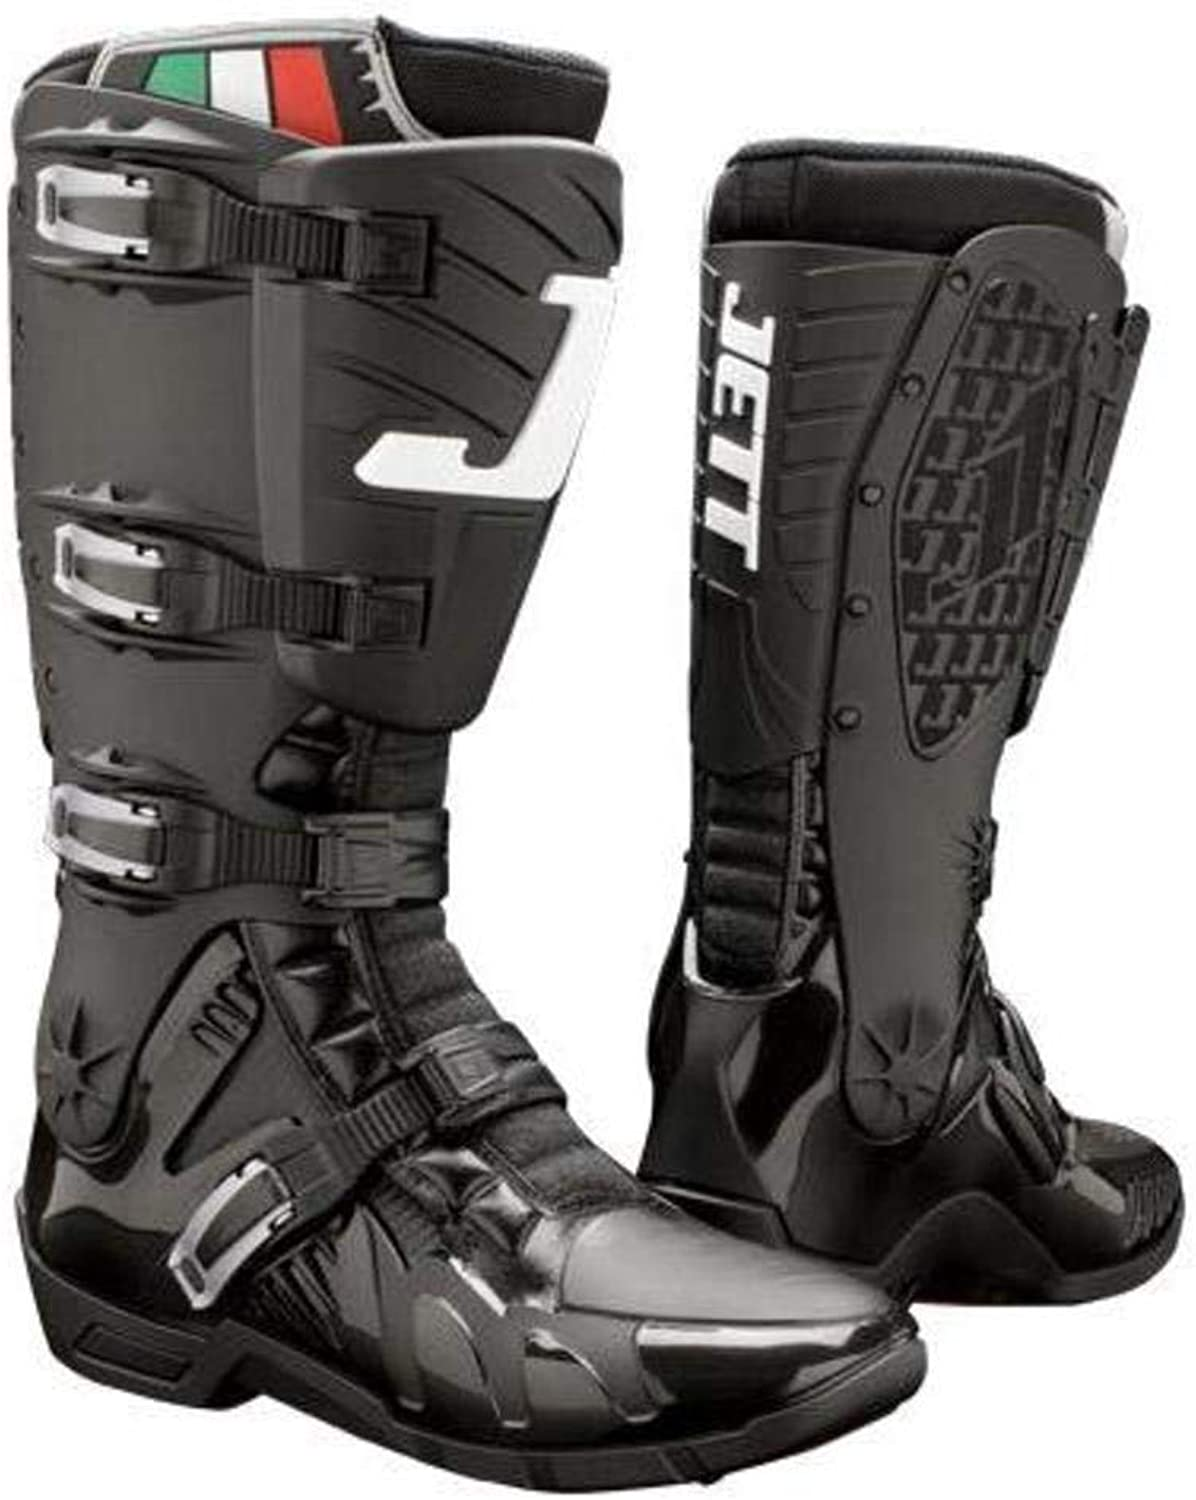 Jett J1 Boot Replacement Upper with Hardware - Black - Sm 92.0005-BKS